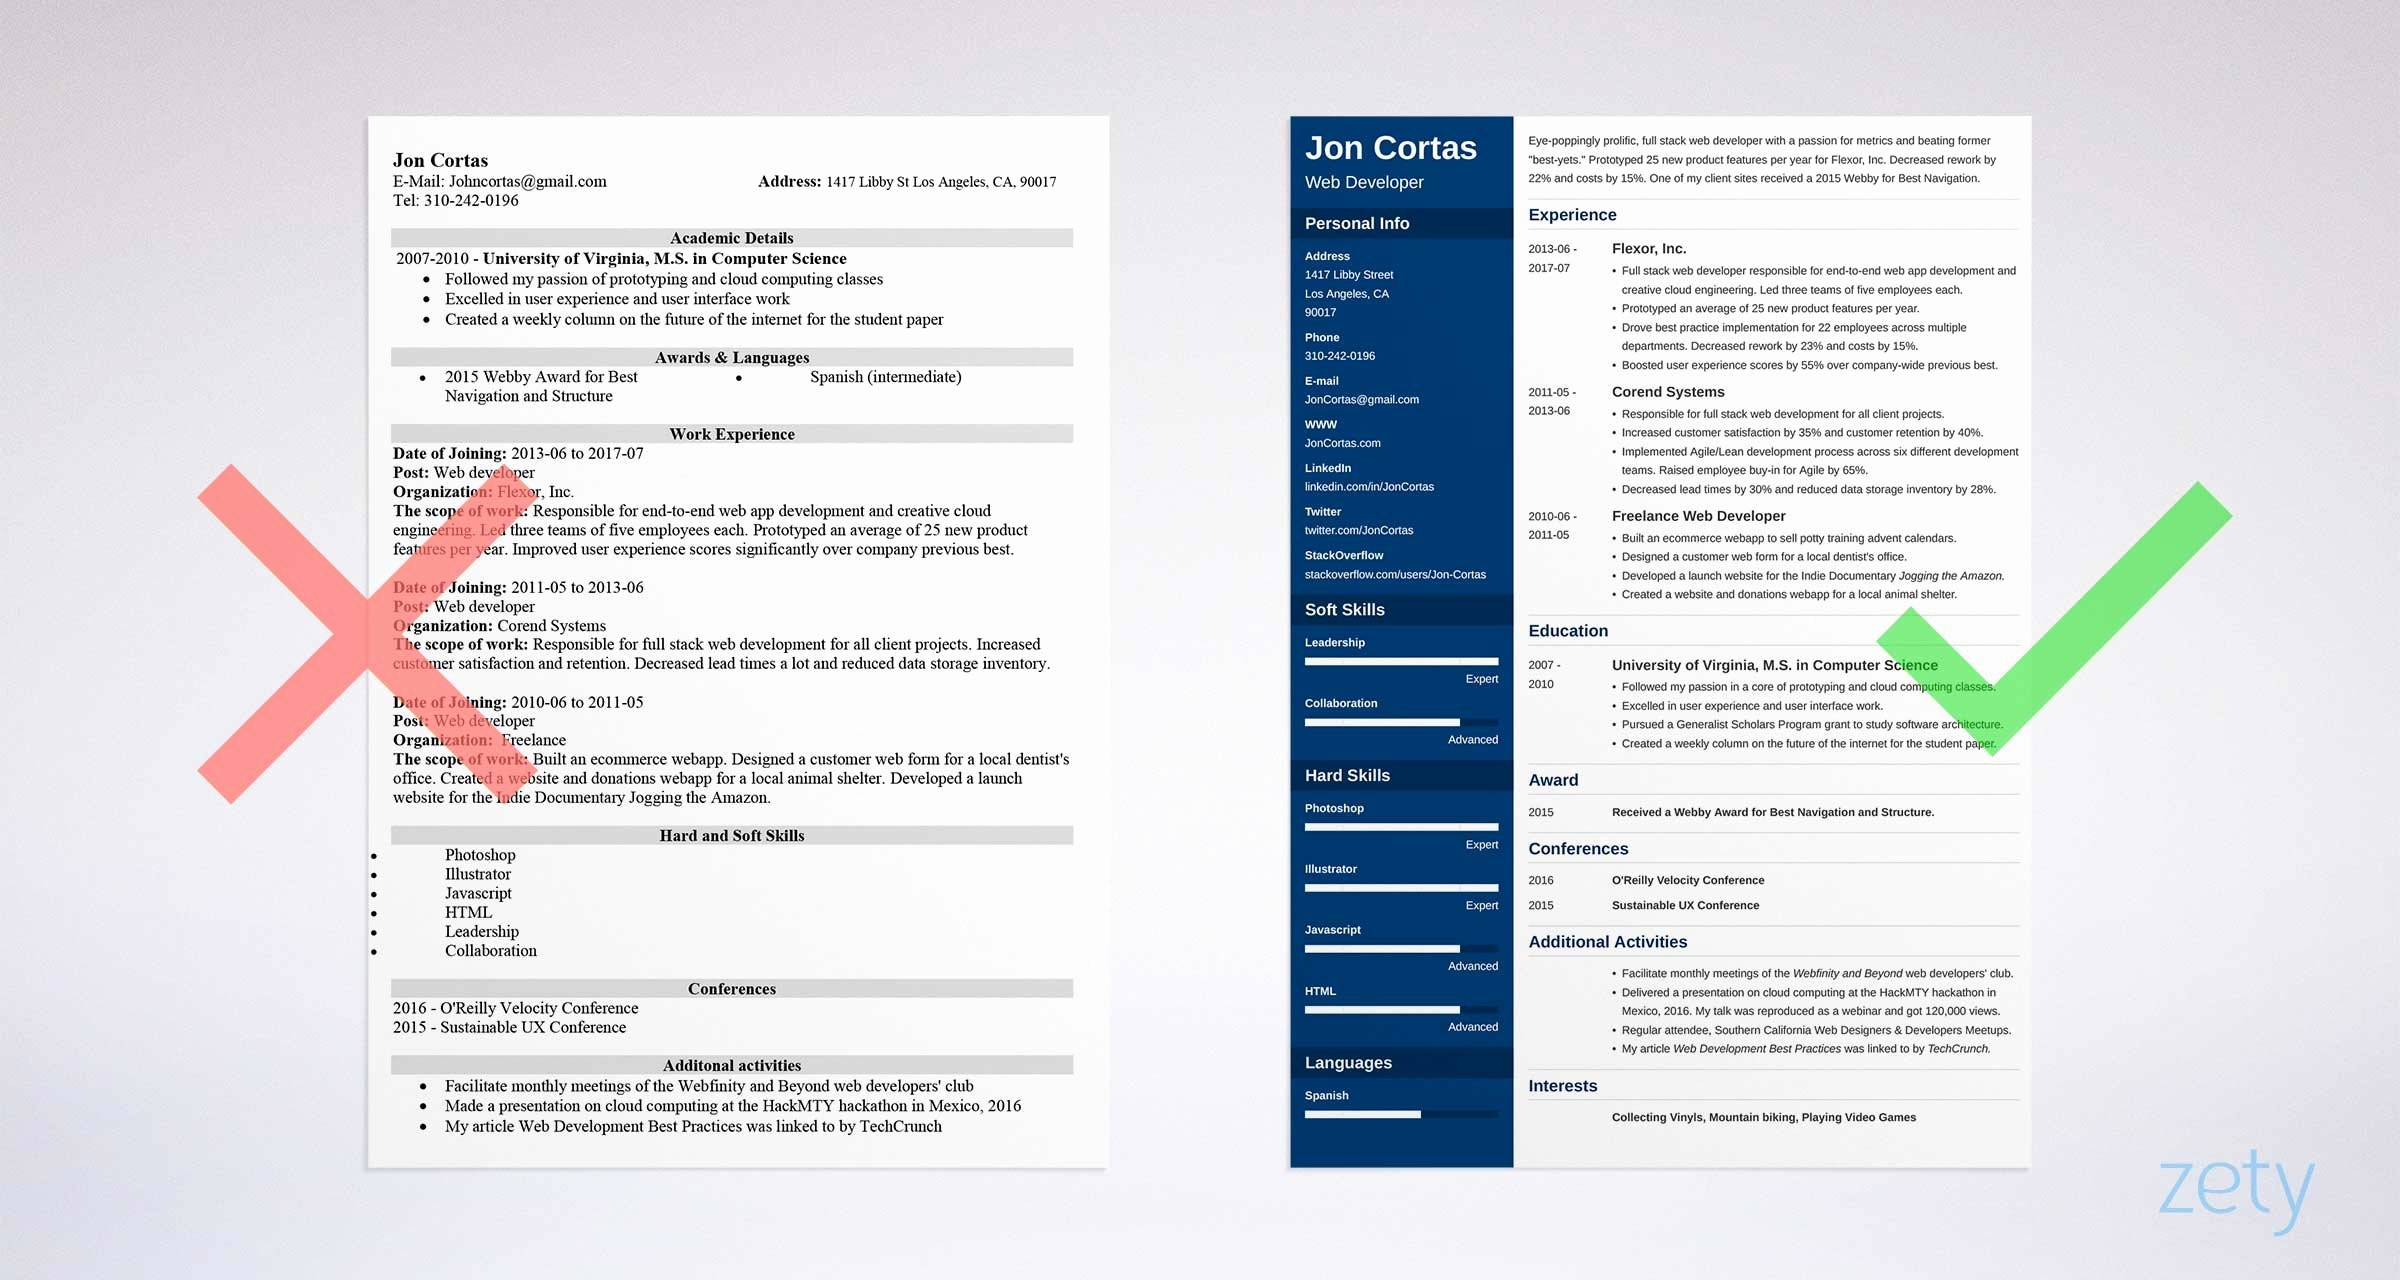 Resume Templates On Microsoft Word Luxury Free Resume Templates for Word 15 Cv Resume formats to